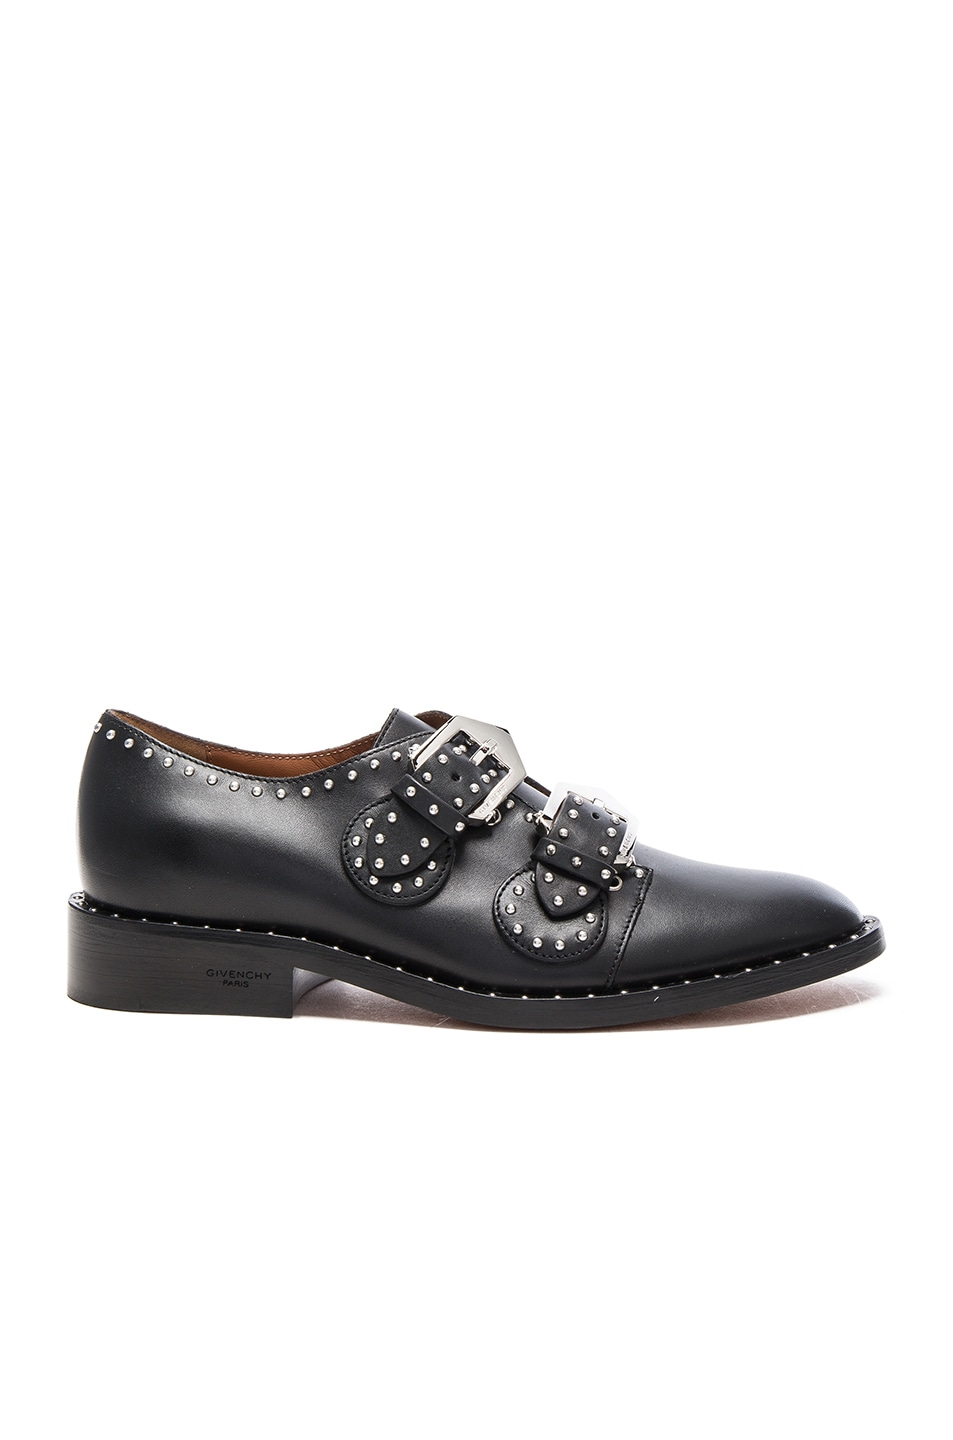 Image 1 of Givenchy Elegant Leather Monk Strap Oxfords in Black